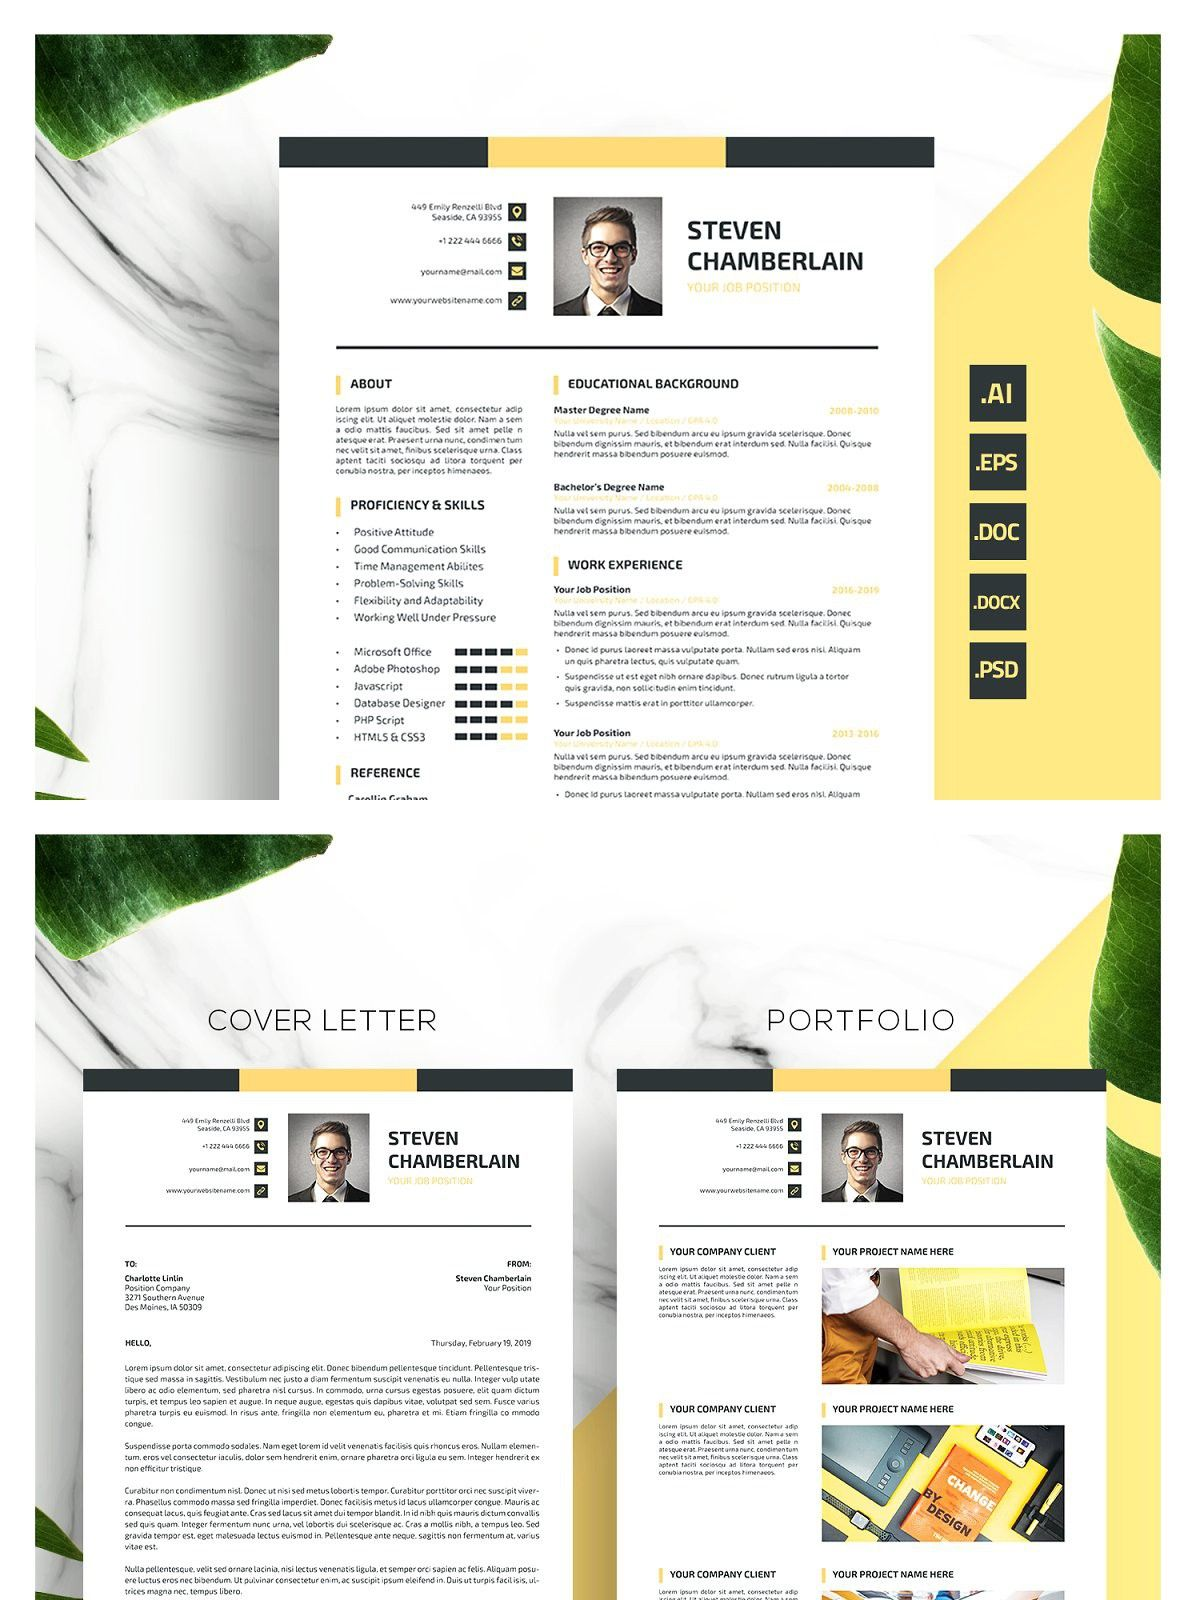 5 Digital Tools That Will Make Your Resume Infinitely More